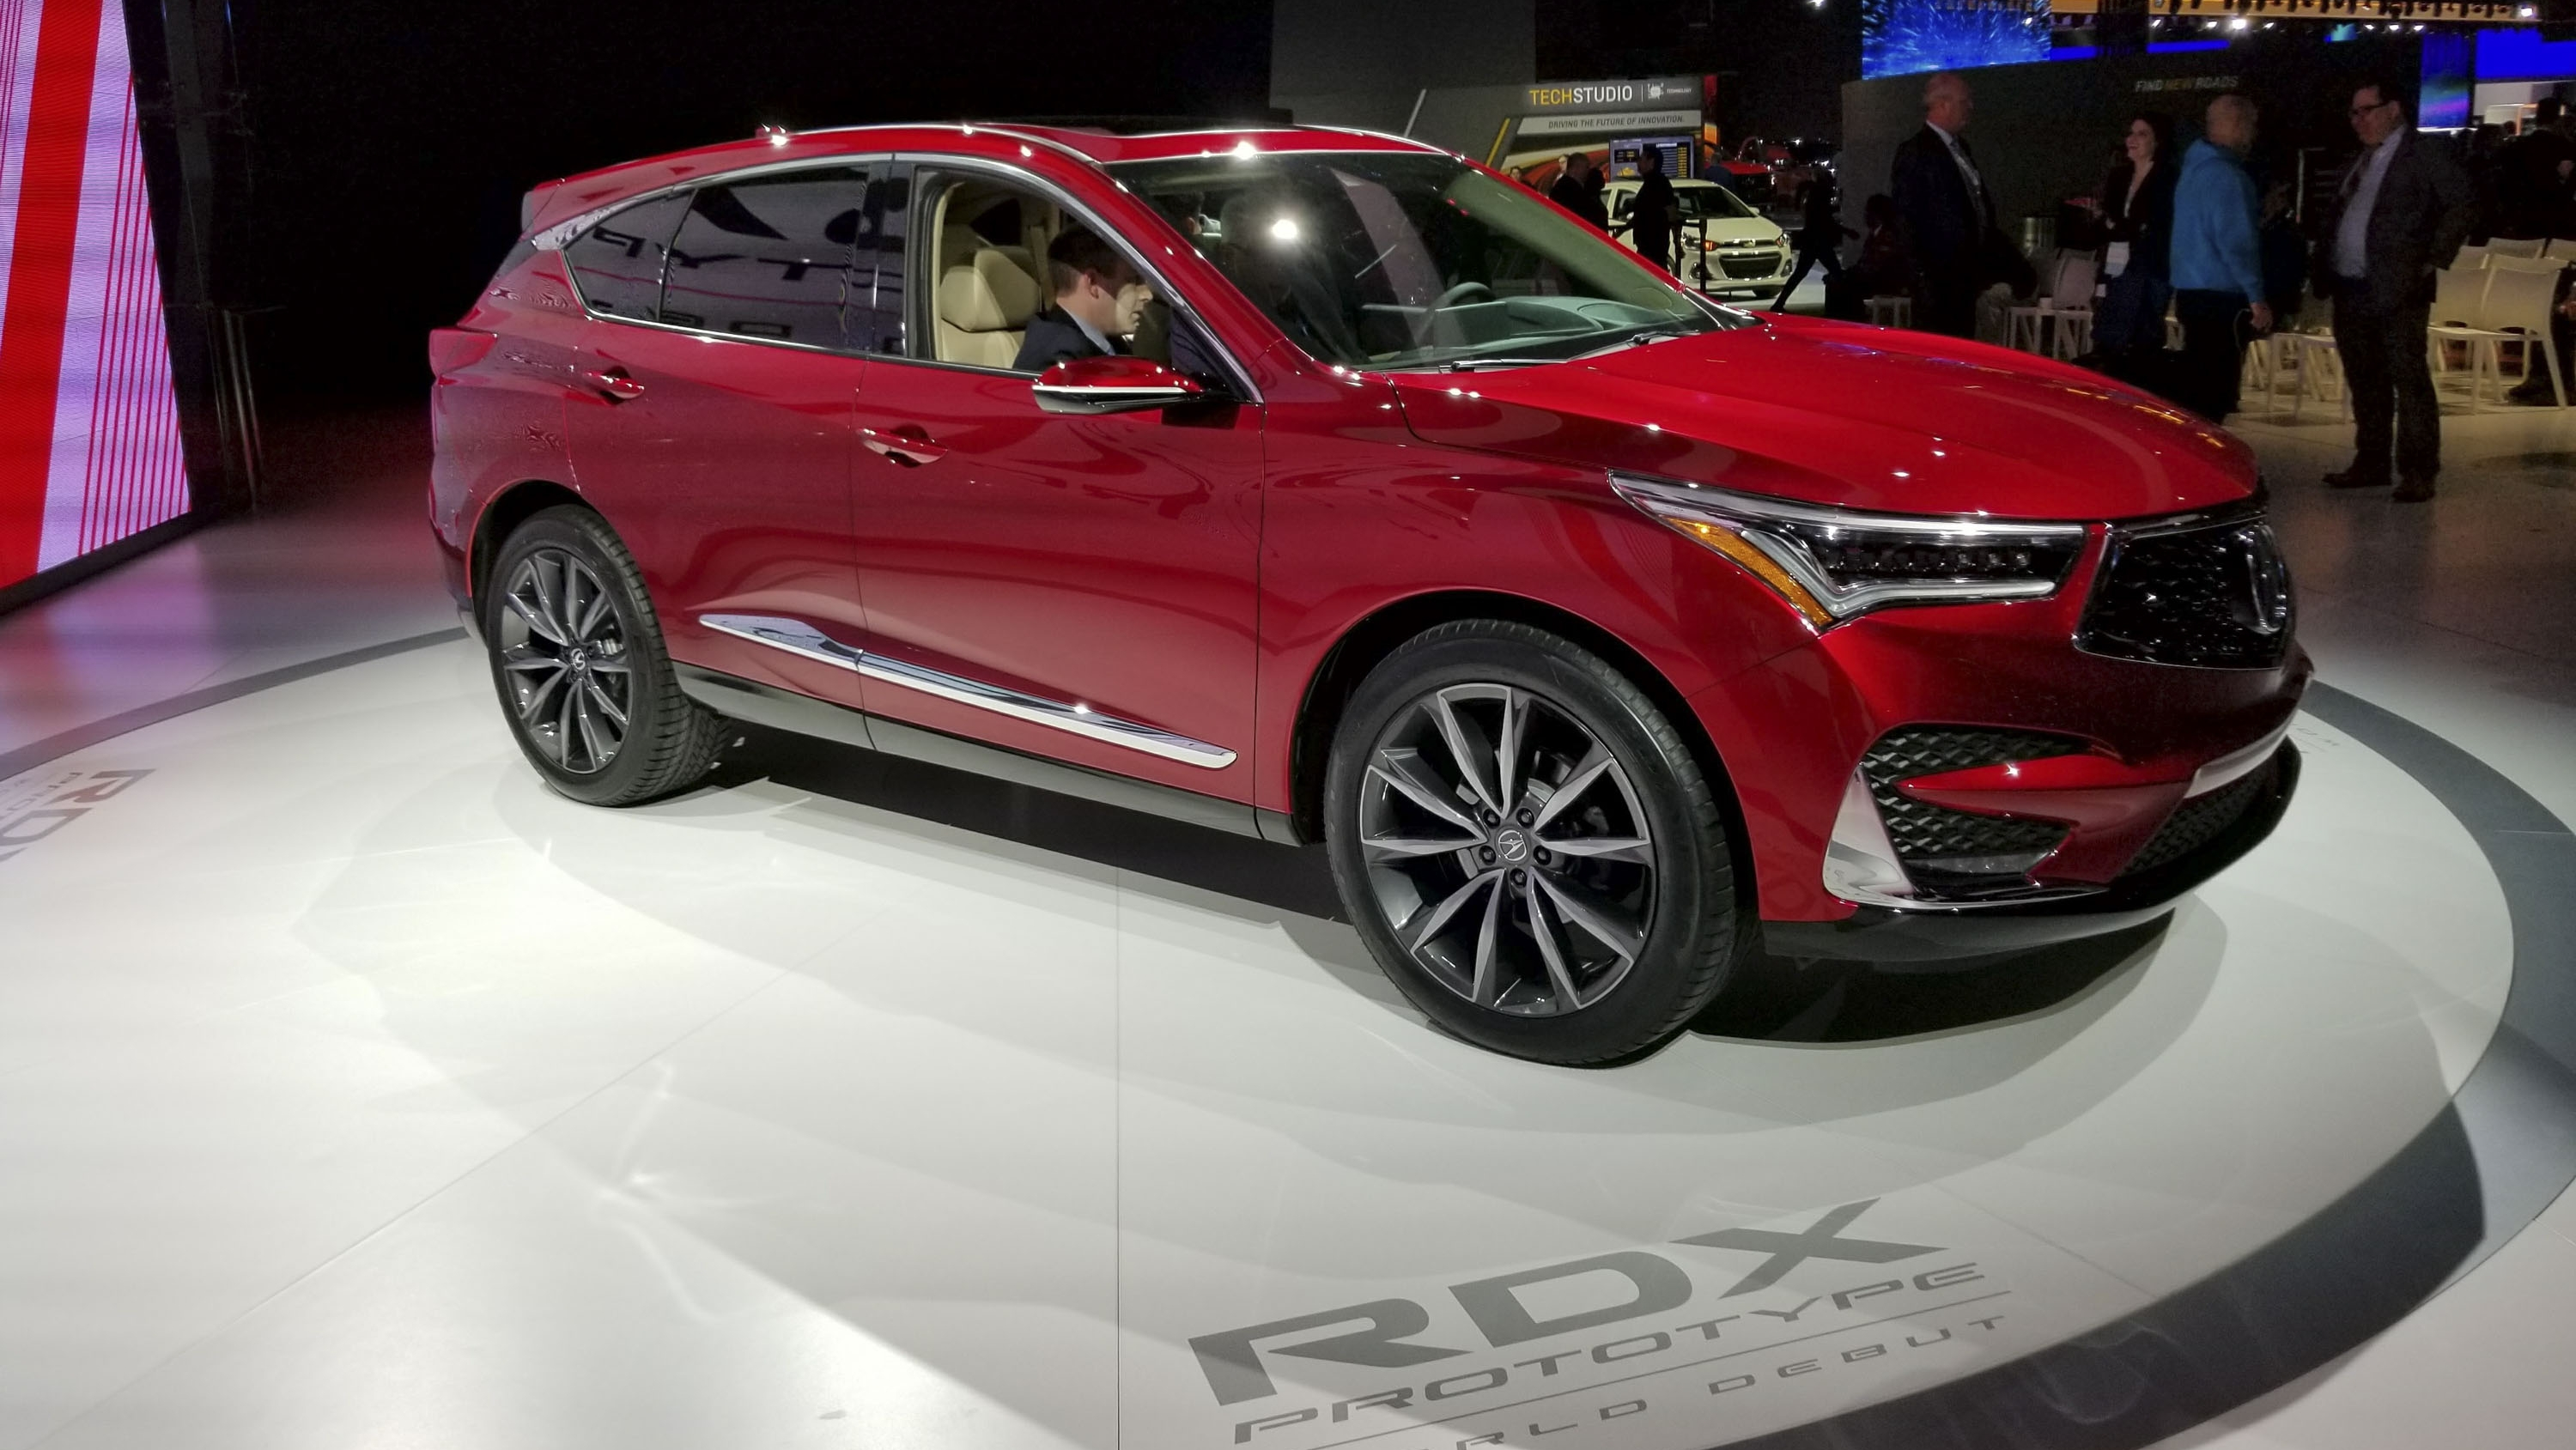 2019 Rdx Redesign >> Acura Swings For The Fences With 2019 RDX – New Look, New Tech, Extra SUV | Top Speed